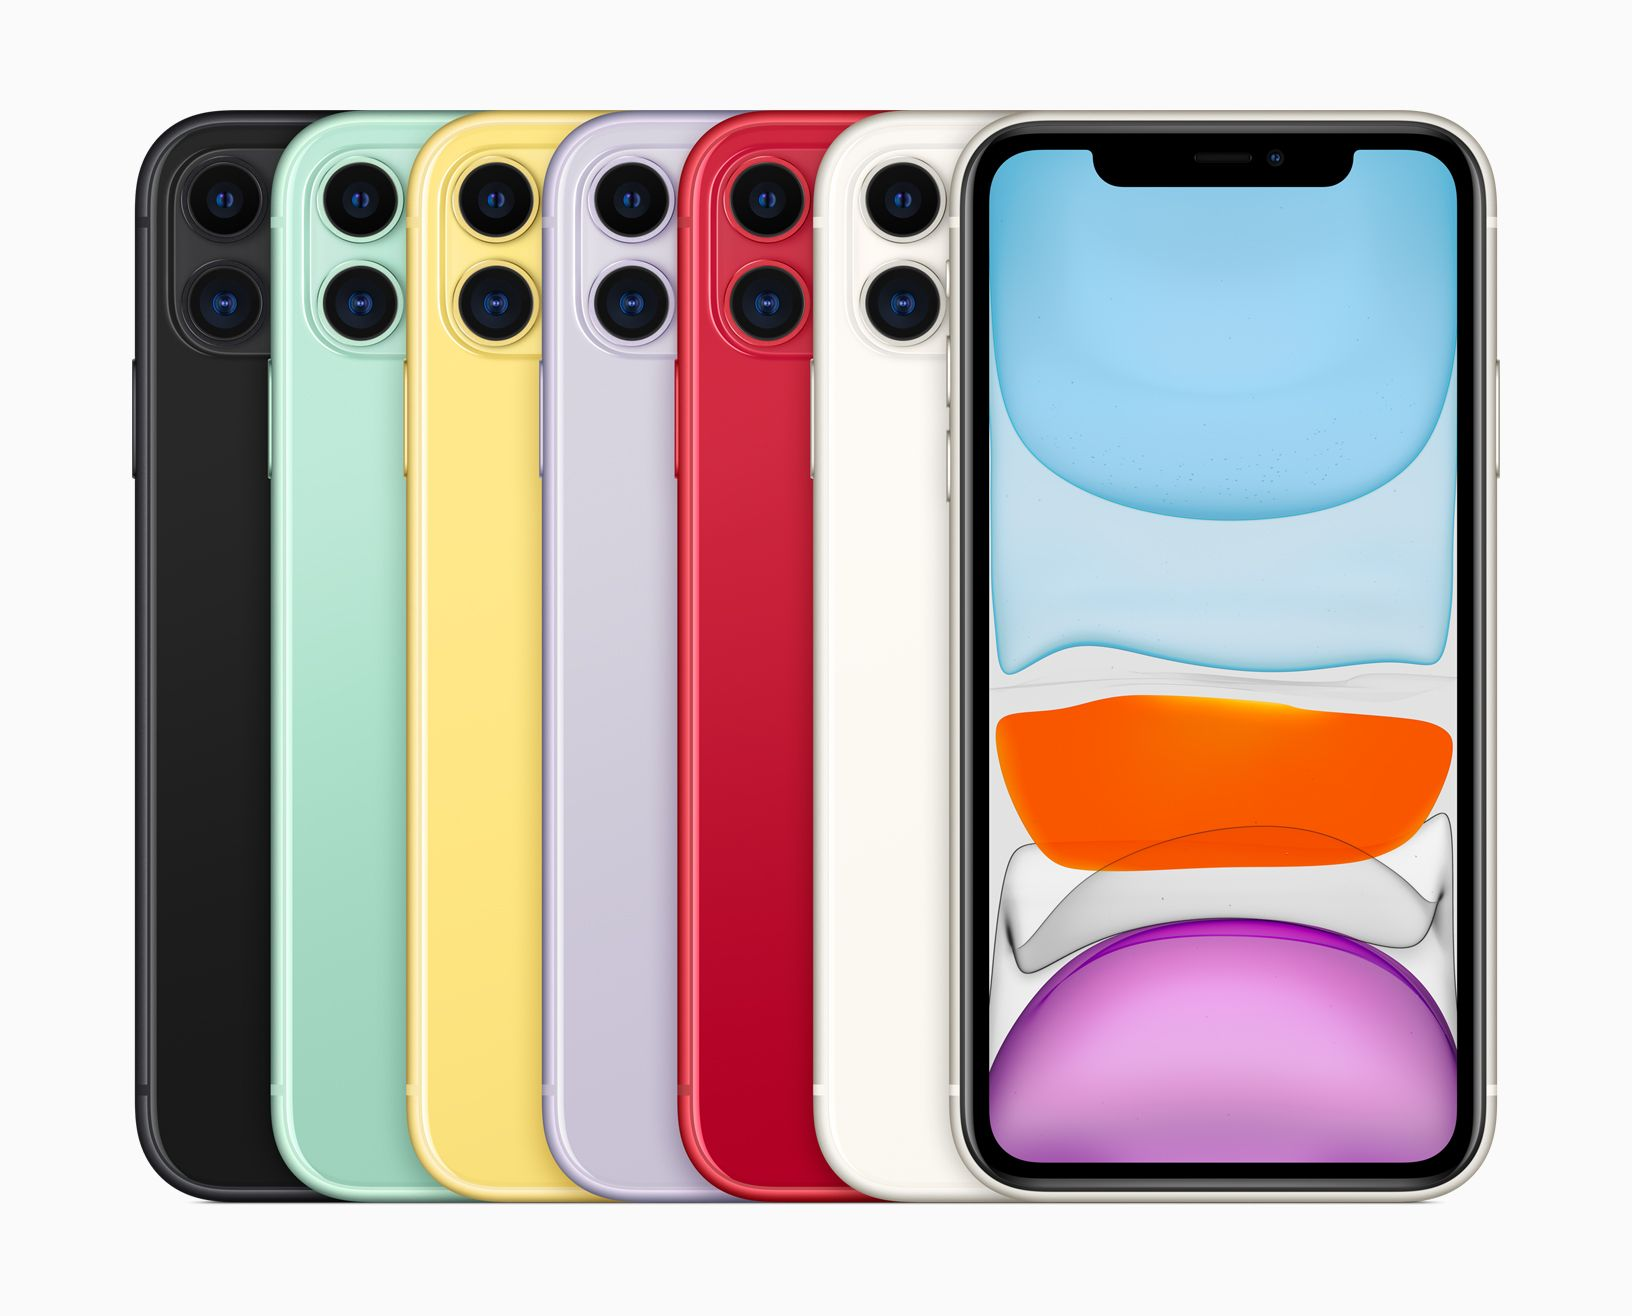 The iPhone 11 will be available in 64GB, 128GB and 256GB models in purple, green, yellow, black, white and PRODUCT(RED) starting at $699.